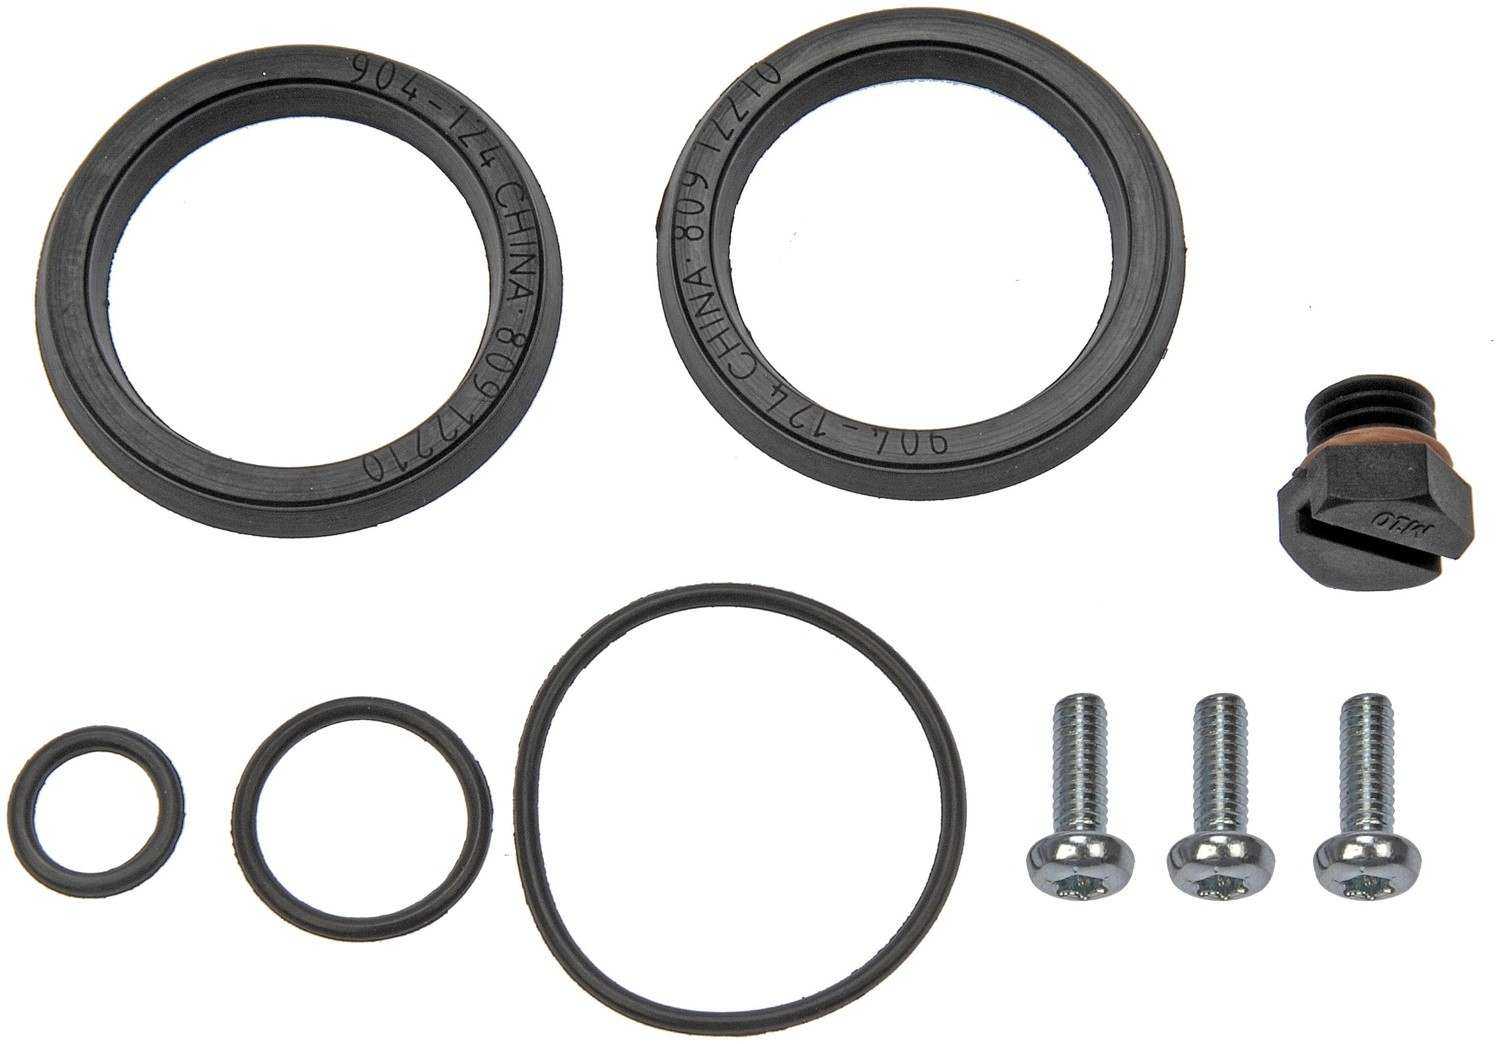 Fuel Filter Primer Housing Seal Kit Gm 6 6l Dorman 904 124 Gm